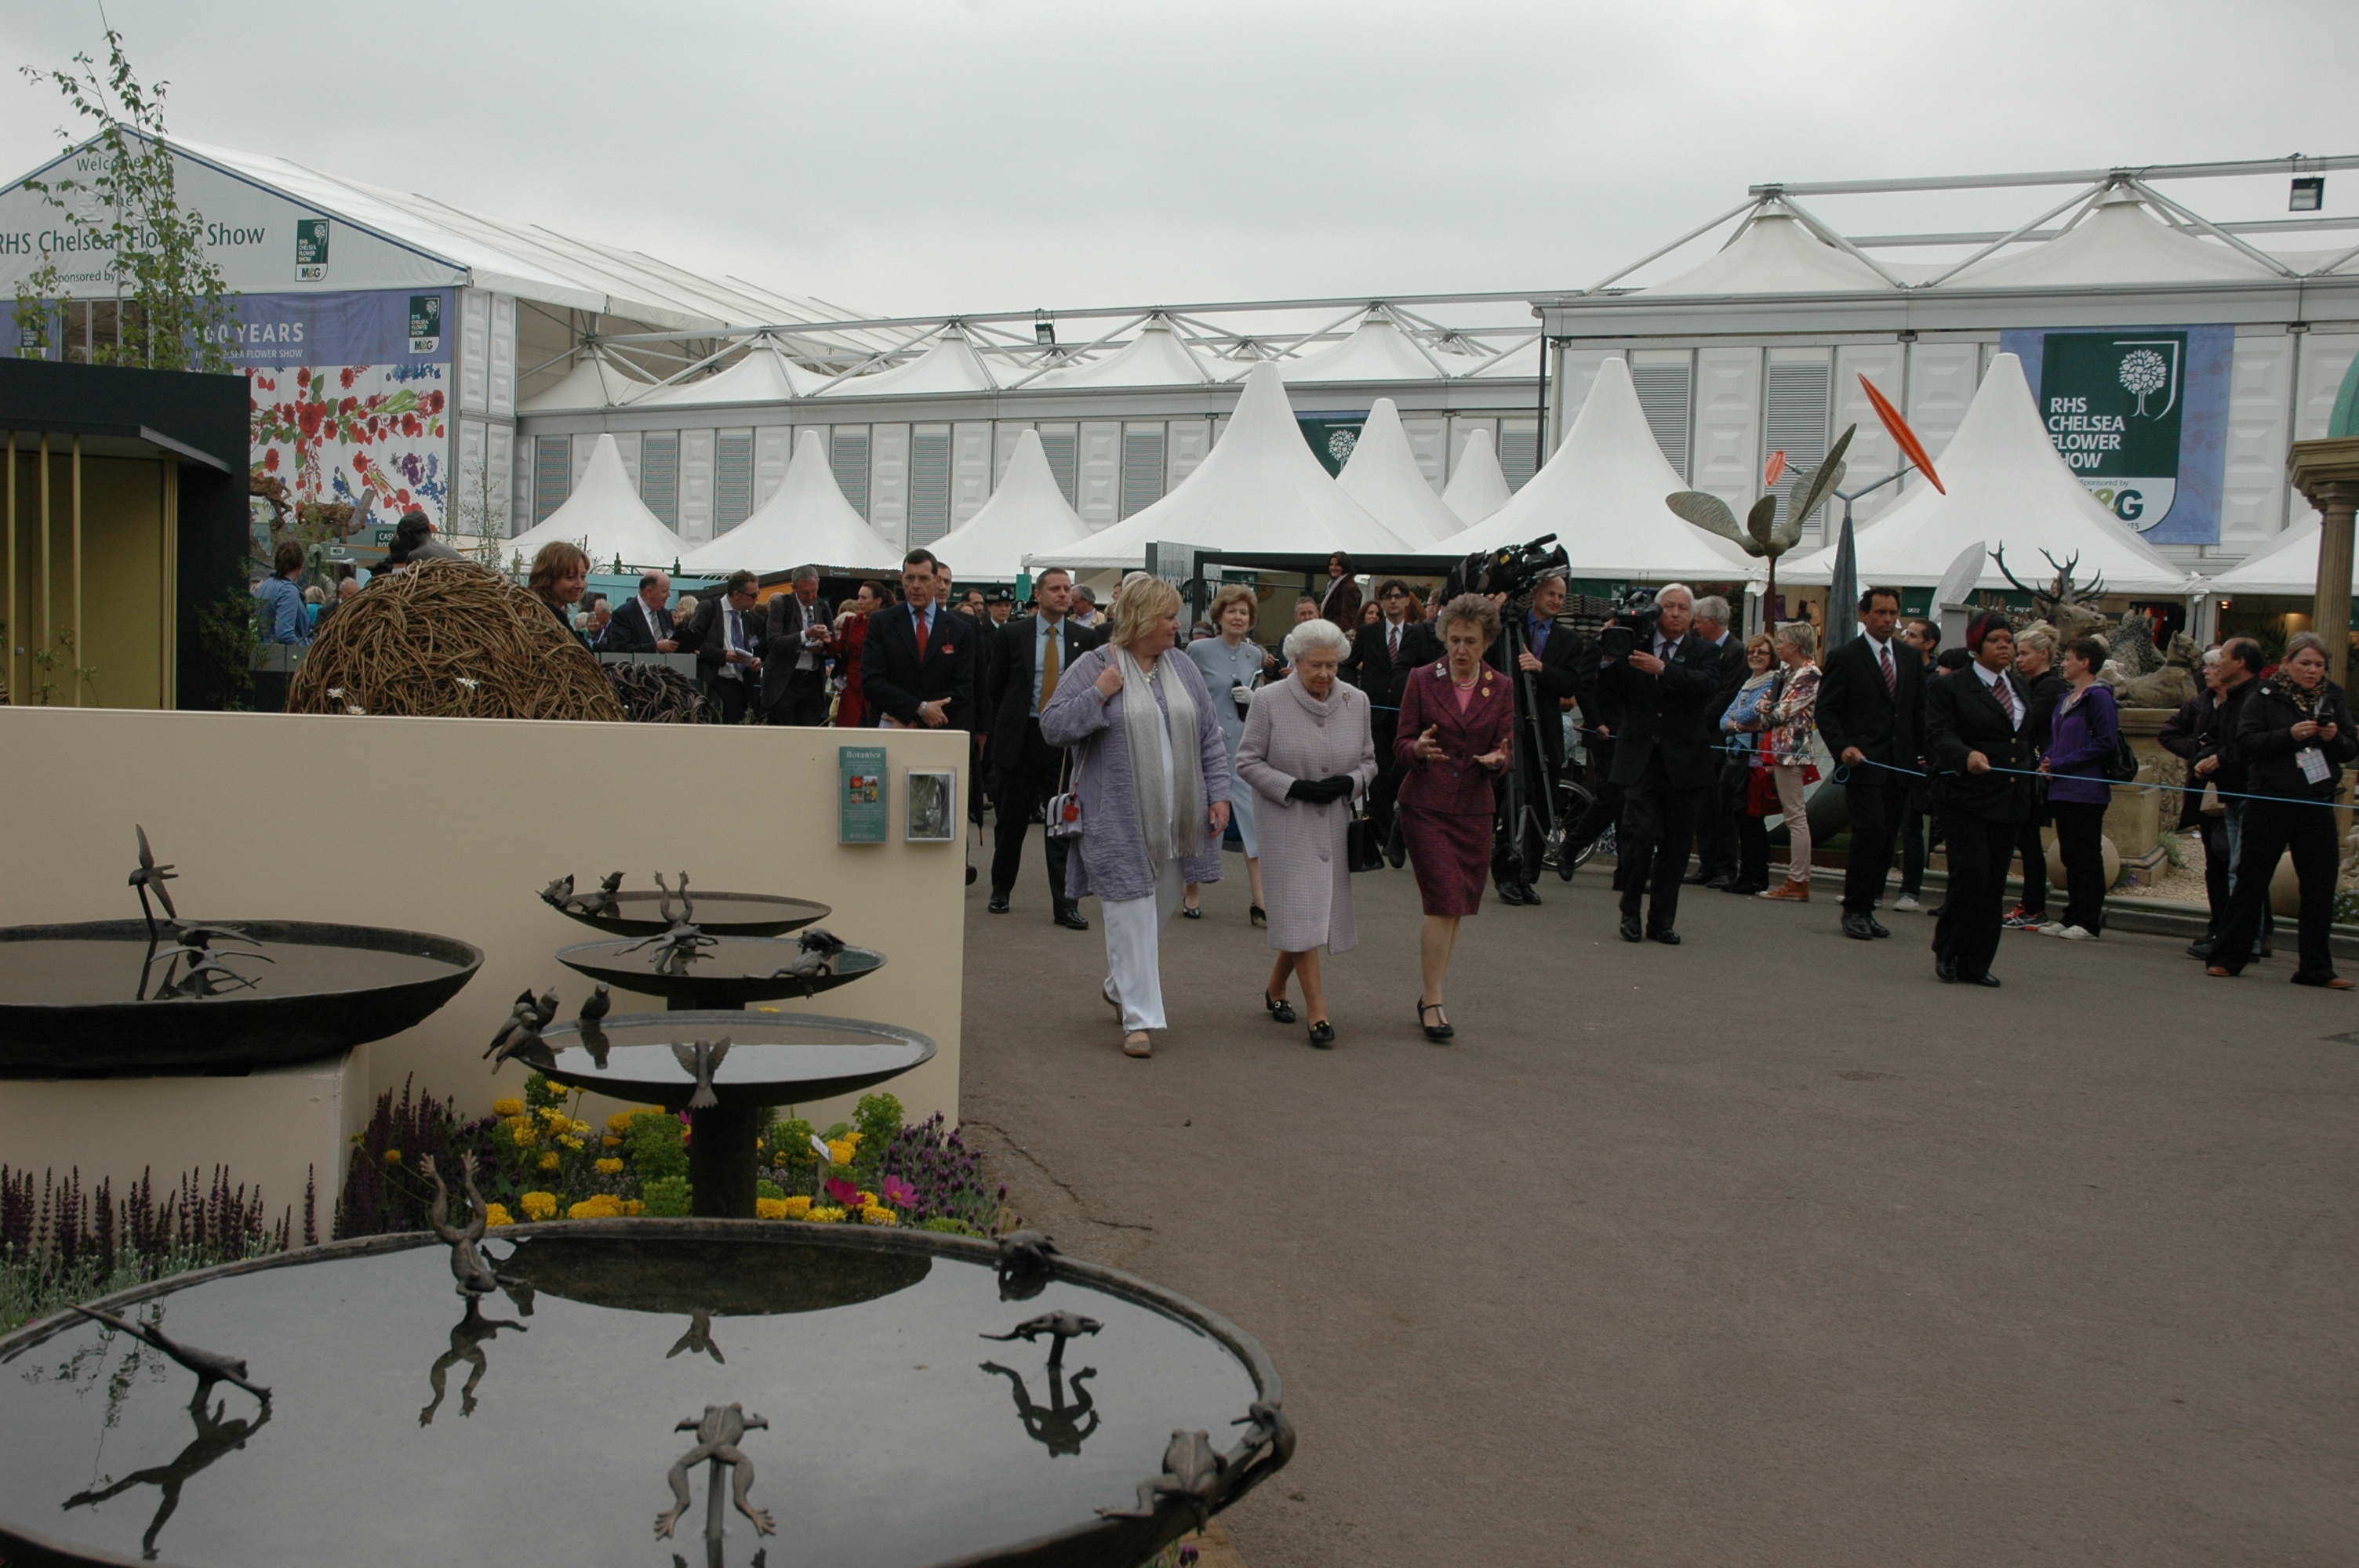 The Queen passing Willie Wildlife Sculptures stand